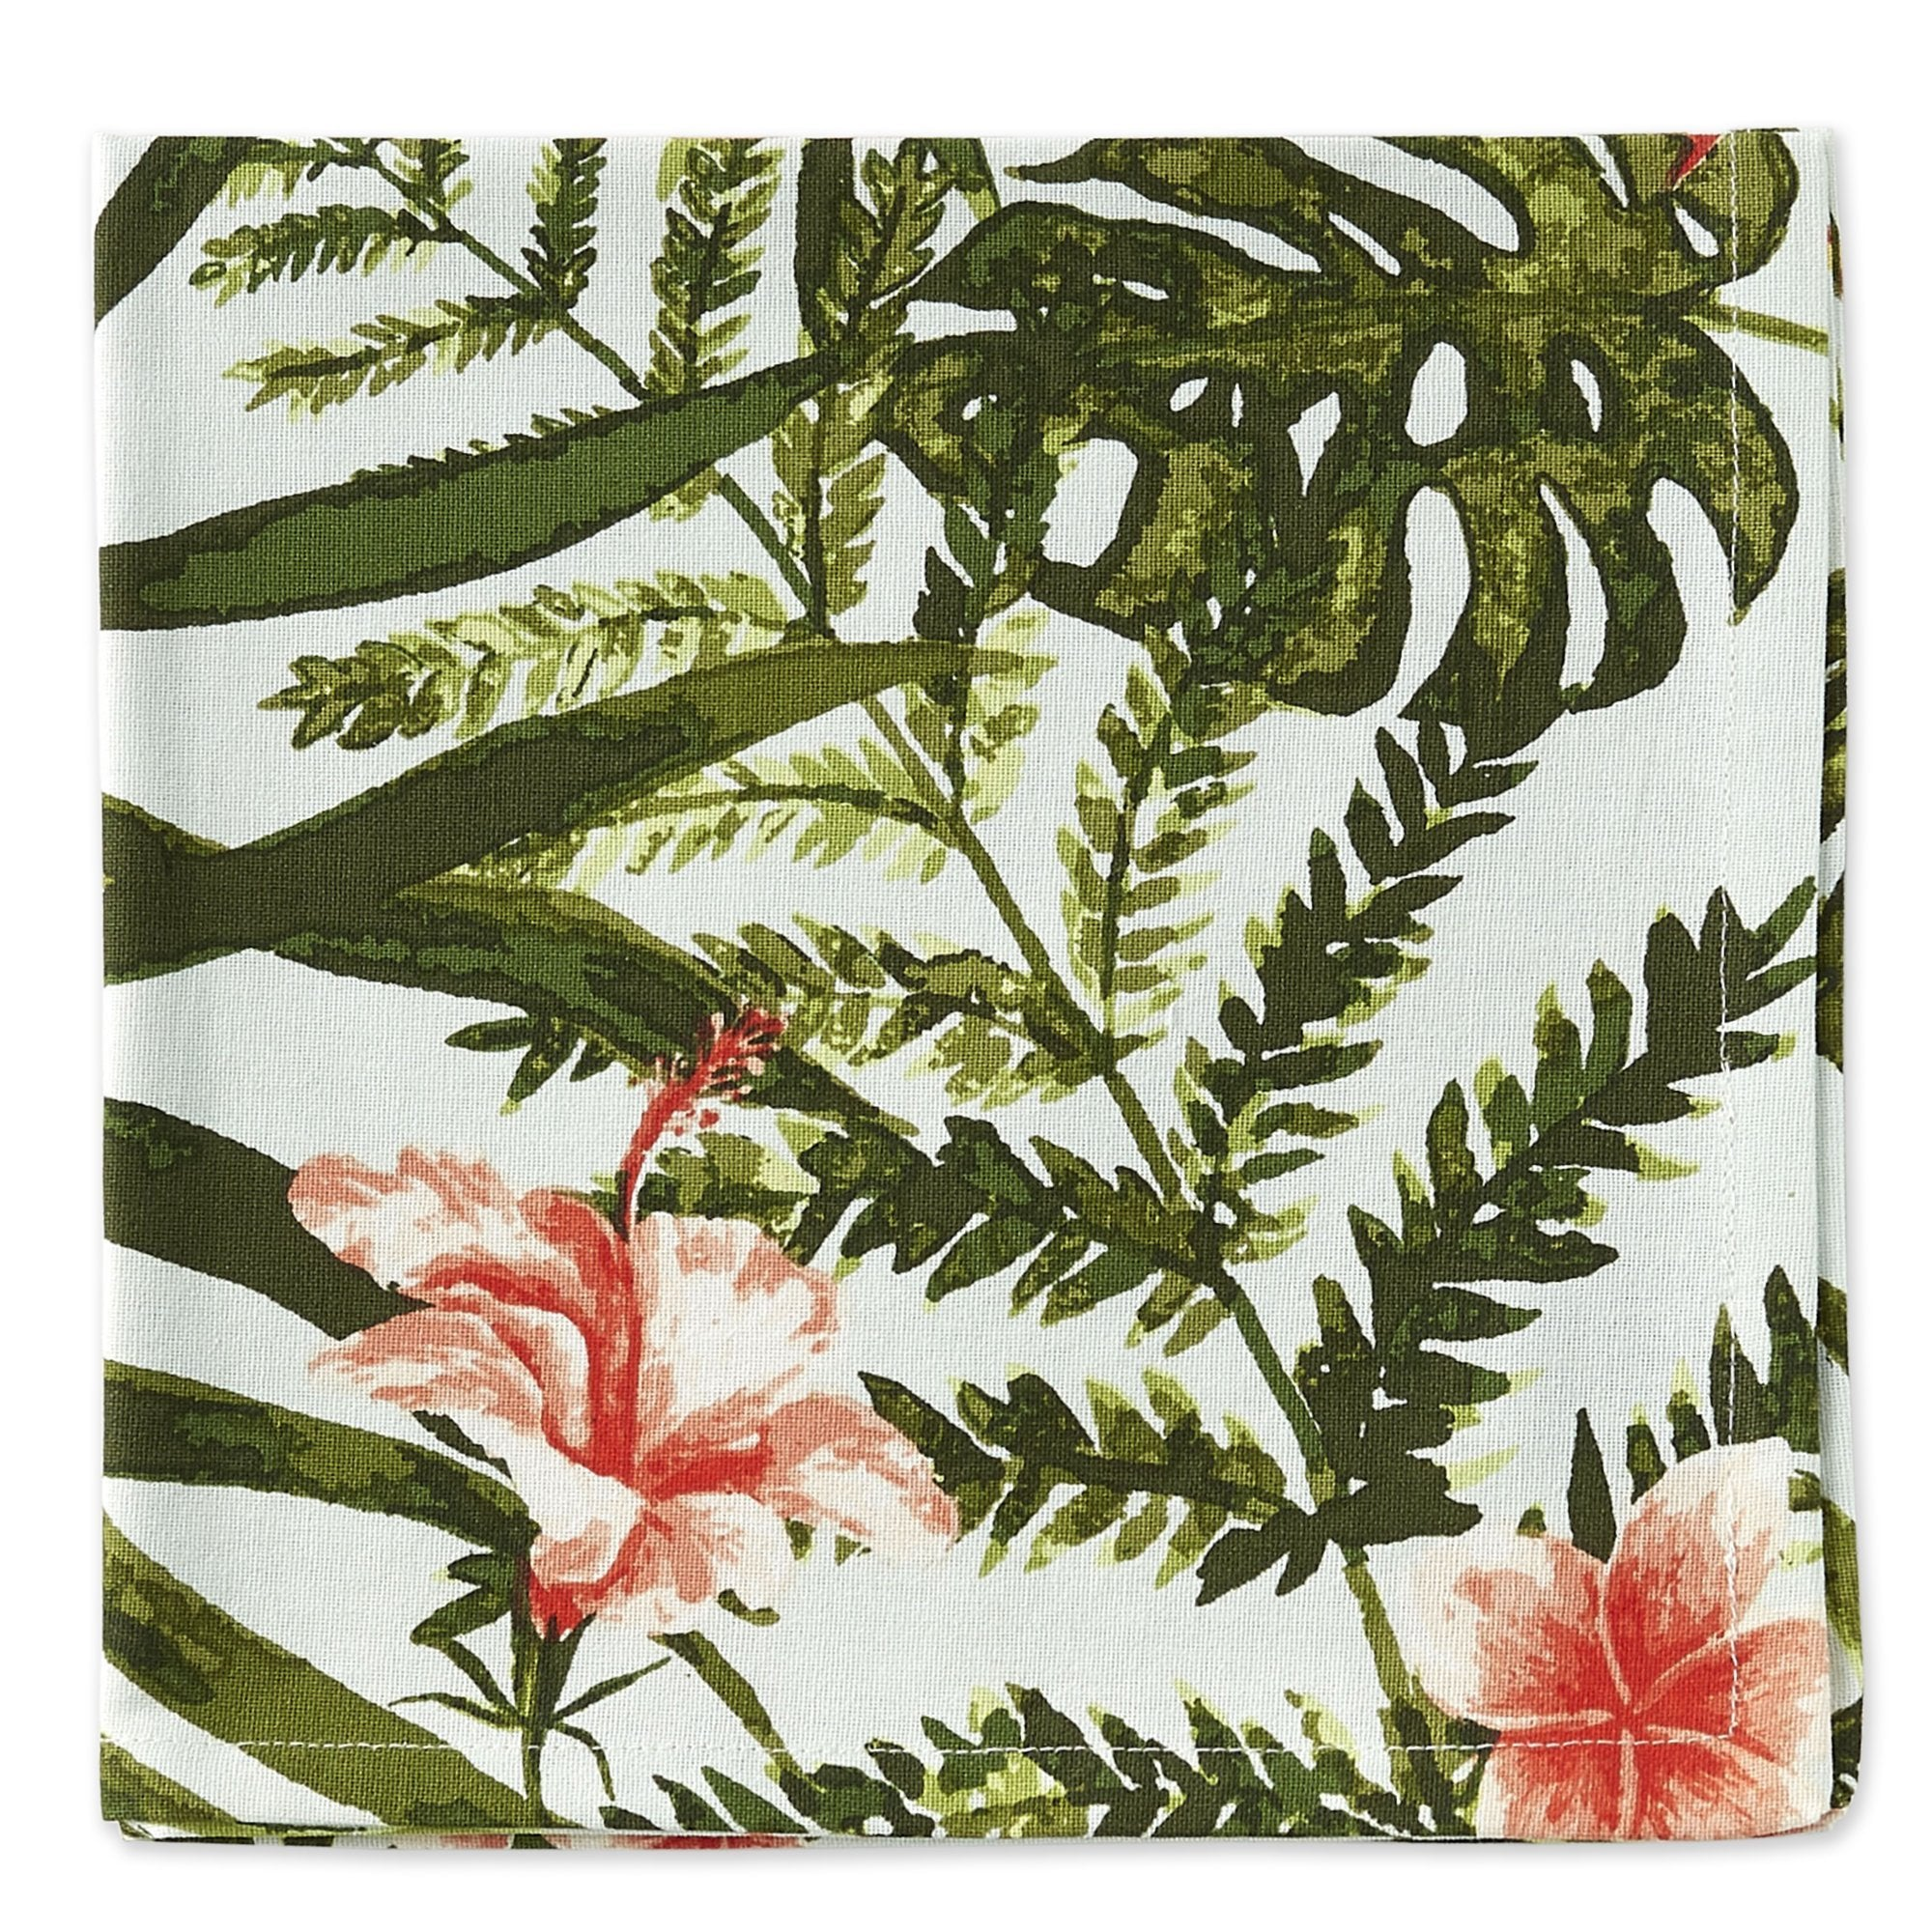 Lush Island Floral and Palm Tropical Printed Napkin Set - the-southern-magnolia-too